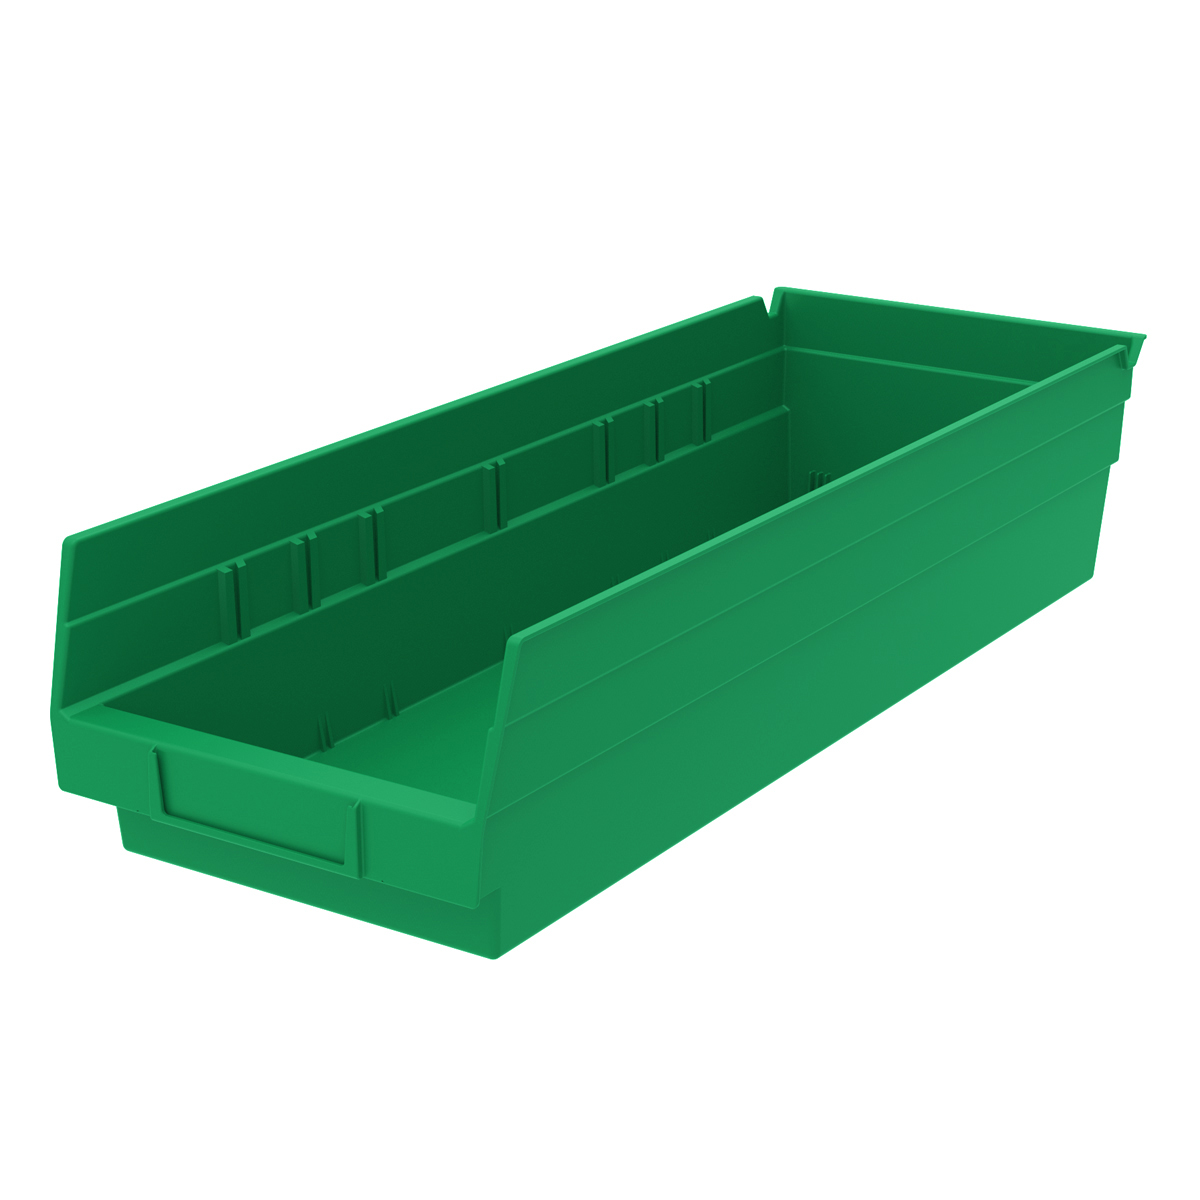 Shelf Bin 17-7/8 x 6-5/8 x 4, Green (30138GREEN).  This item sold in carton quantities of 12.